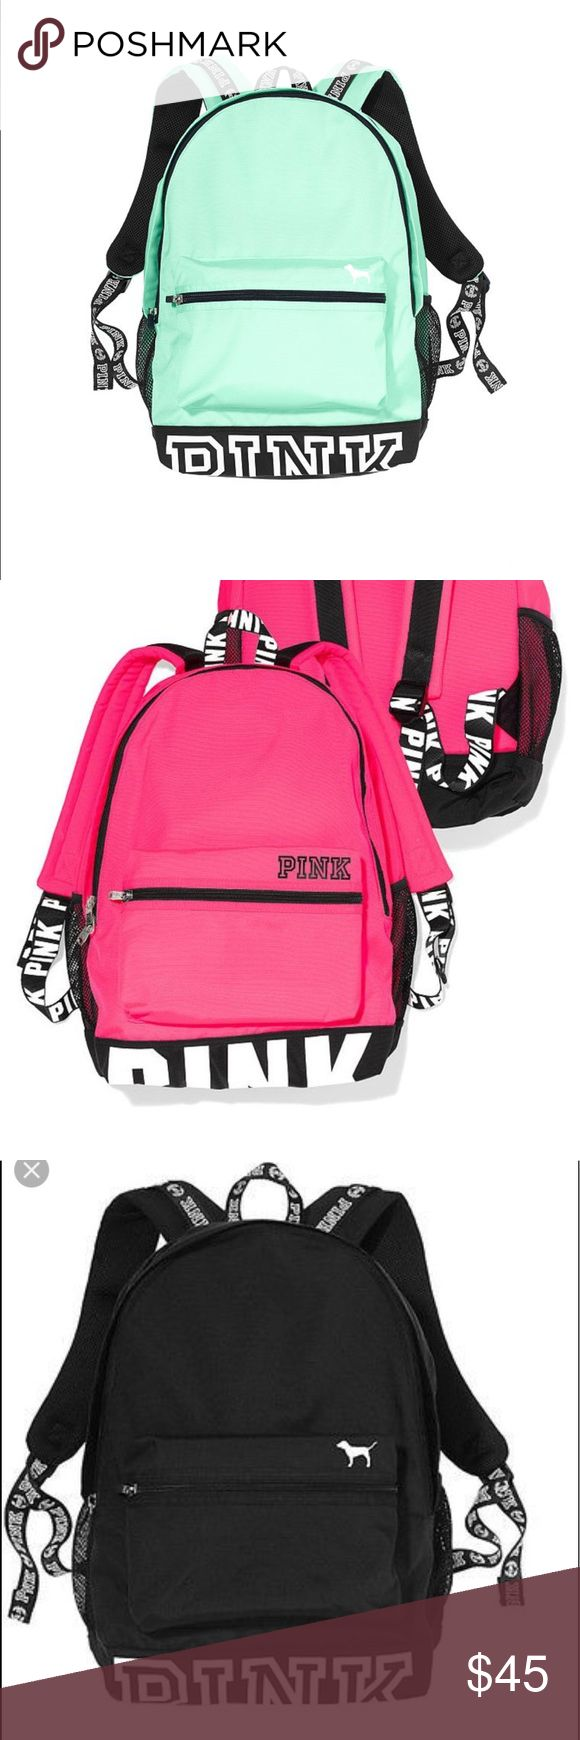 ISO vs PINK campus backpack Also looking for the ID holder, pencil case, and lunch box in matching colors PINK Victoria's Secret Bags Backpacks